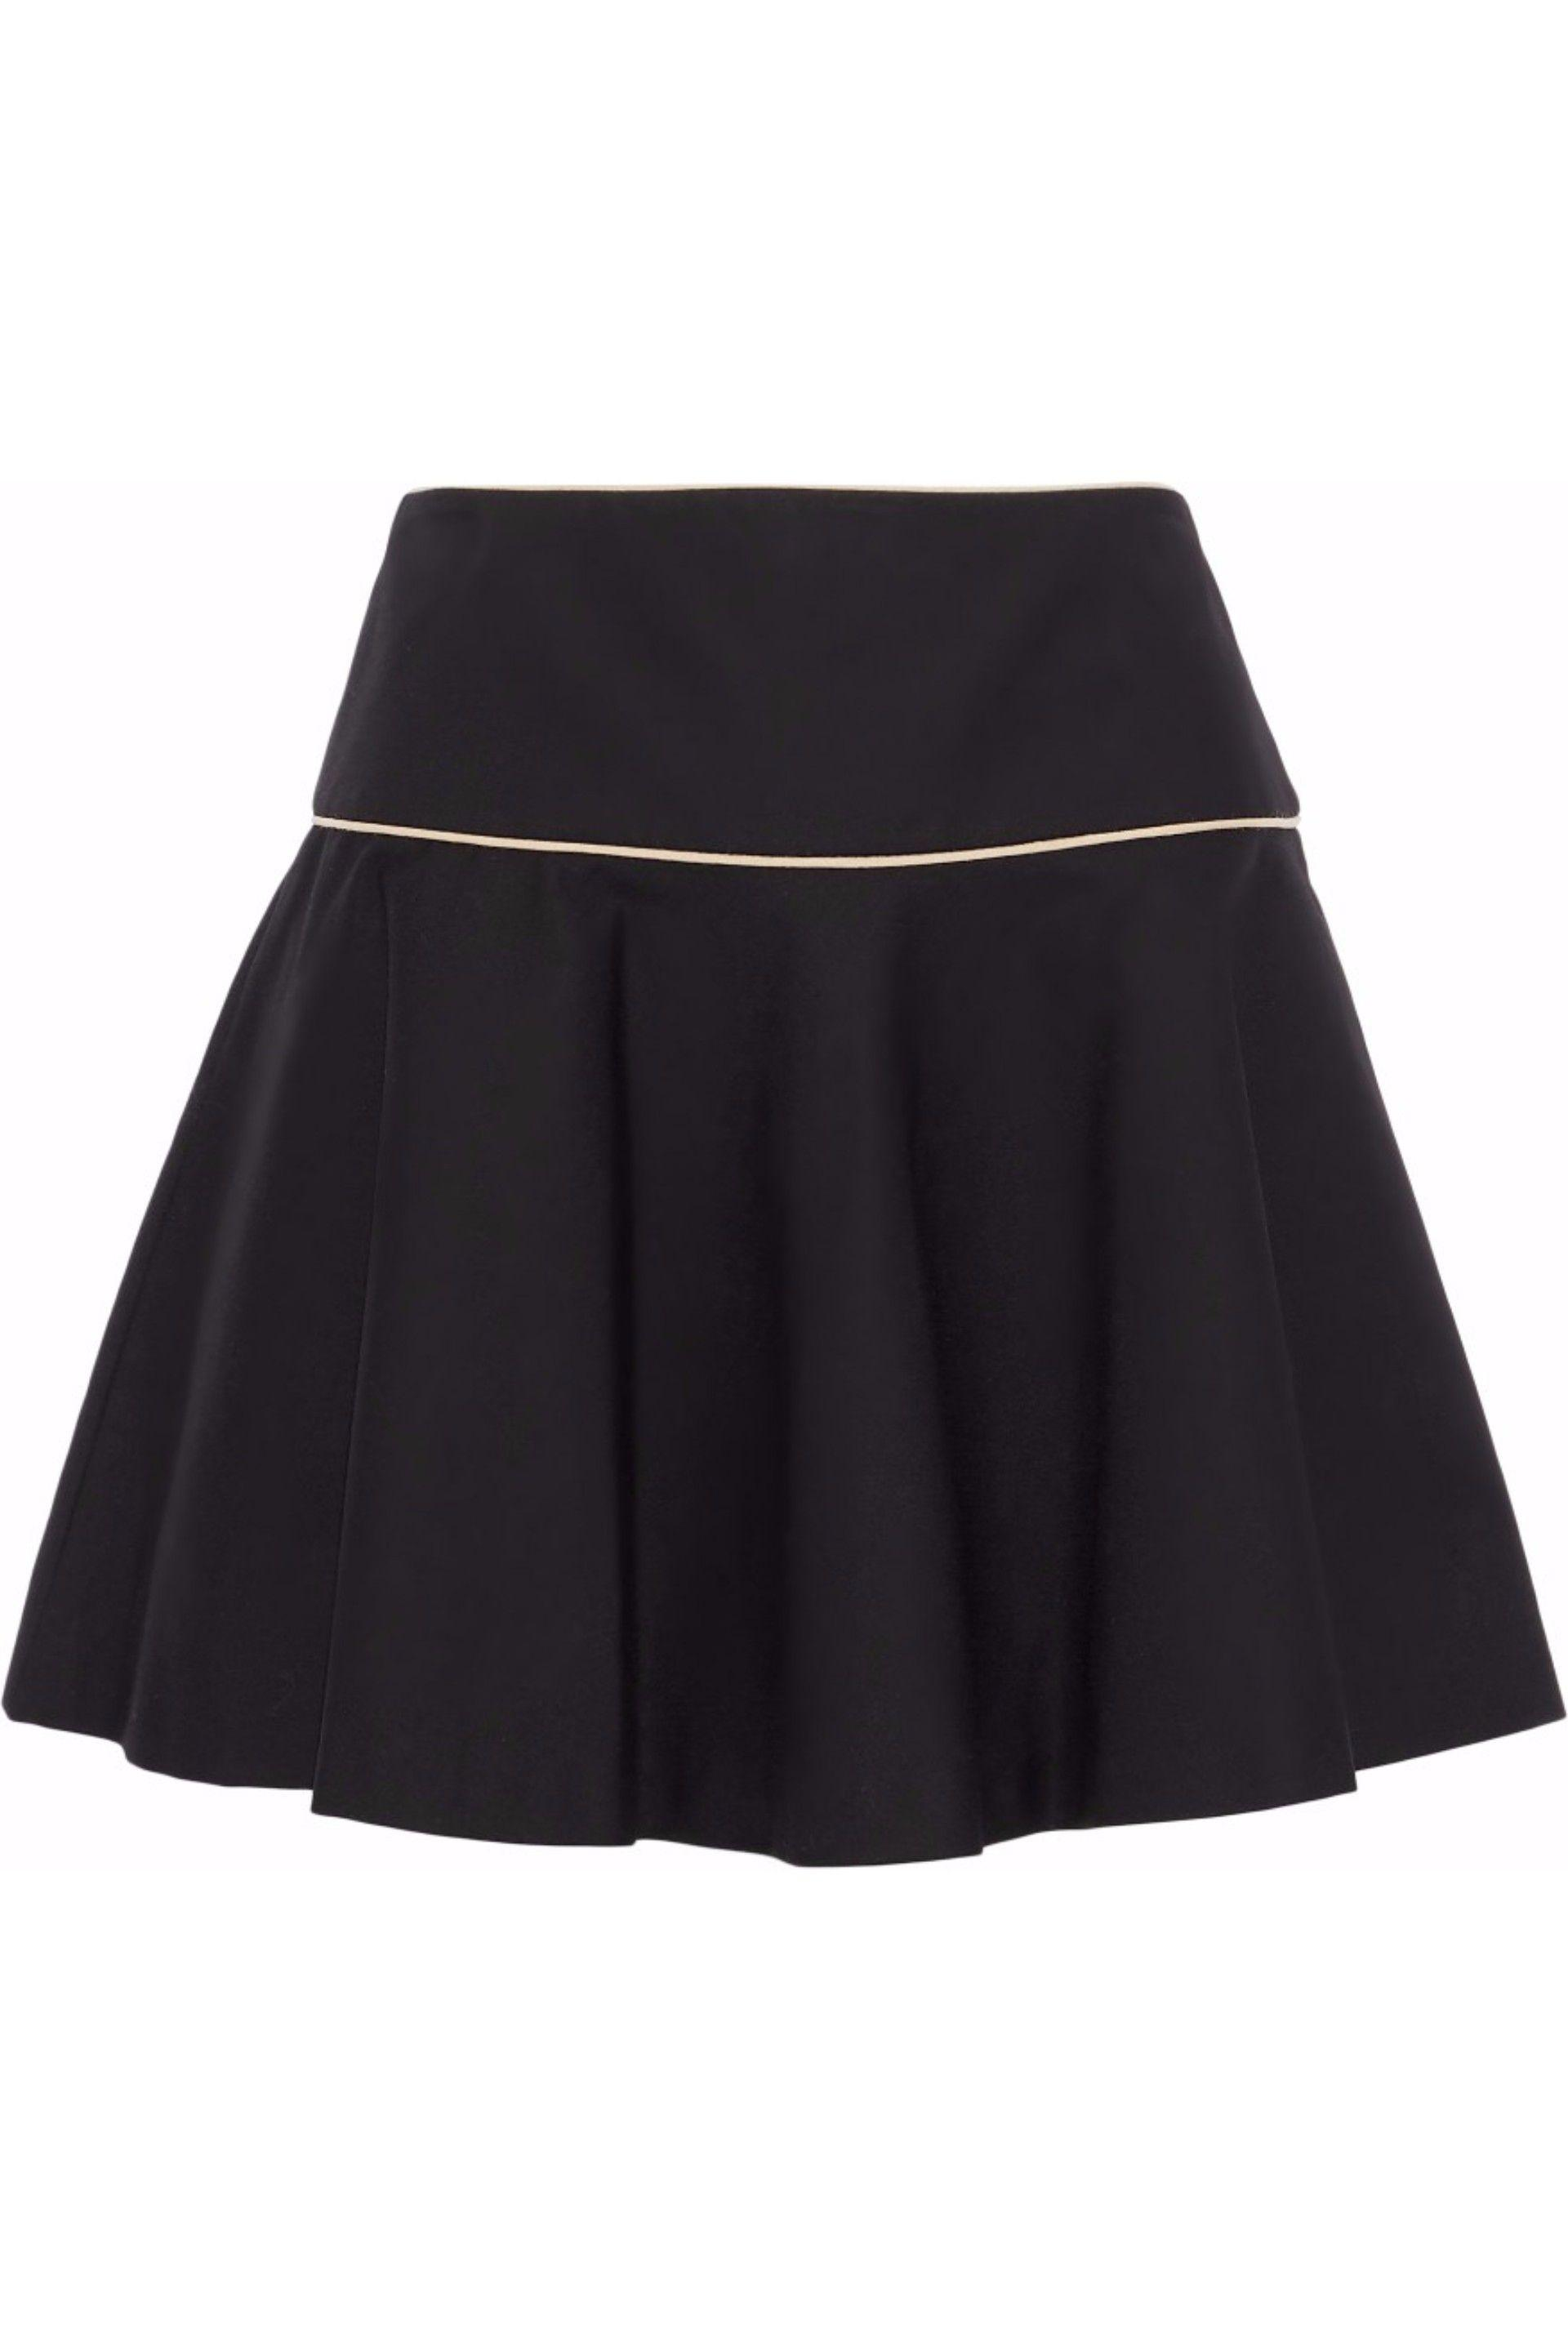 4d4db8cca0 RED Valentino. Women's Woman Flared Stretch-cotton Ponte Mini Skirt Black